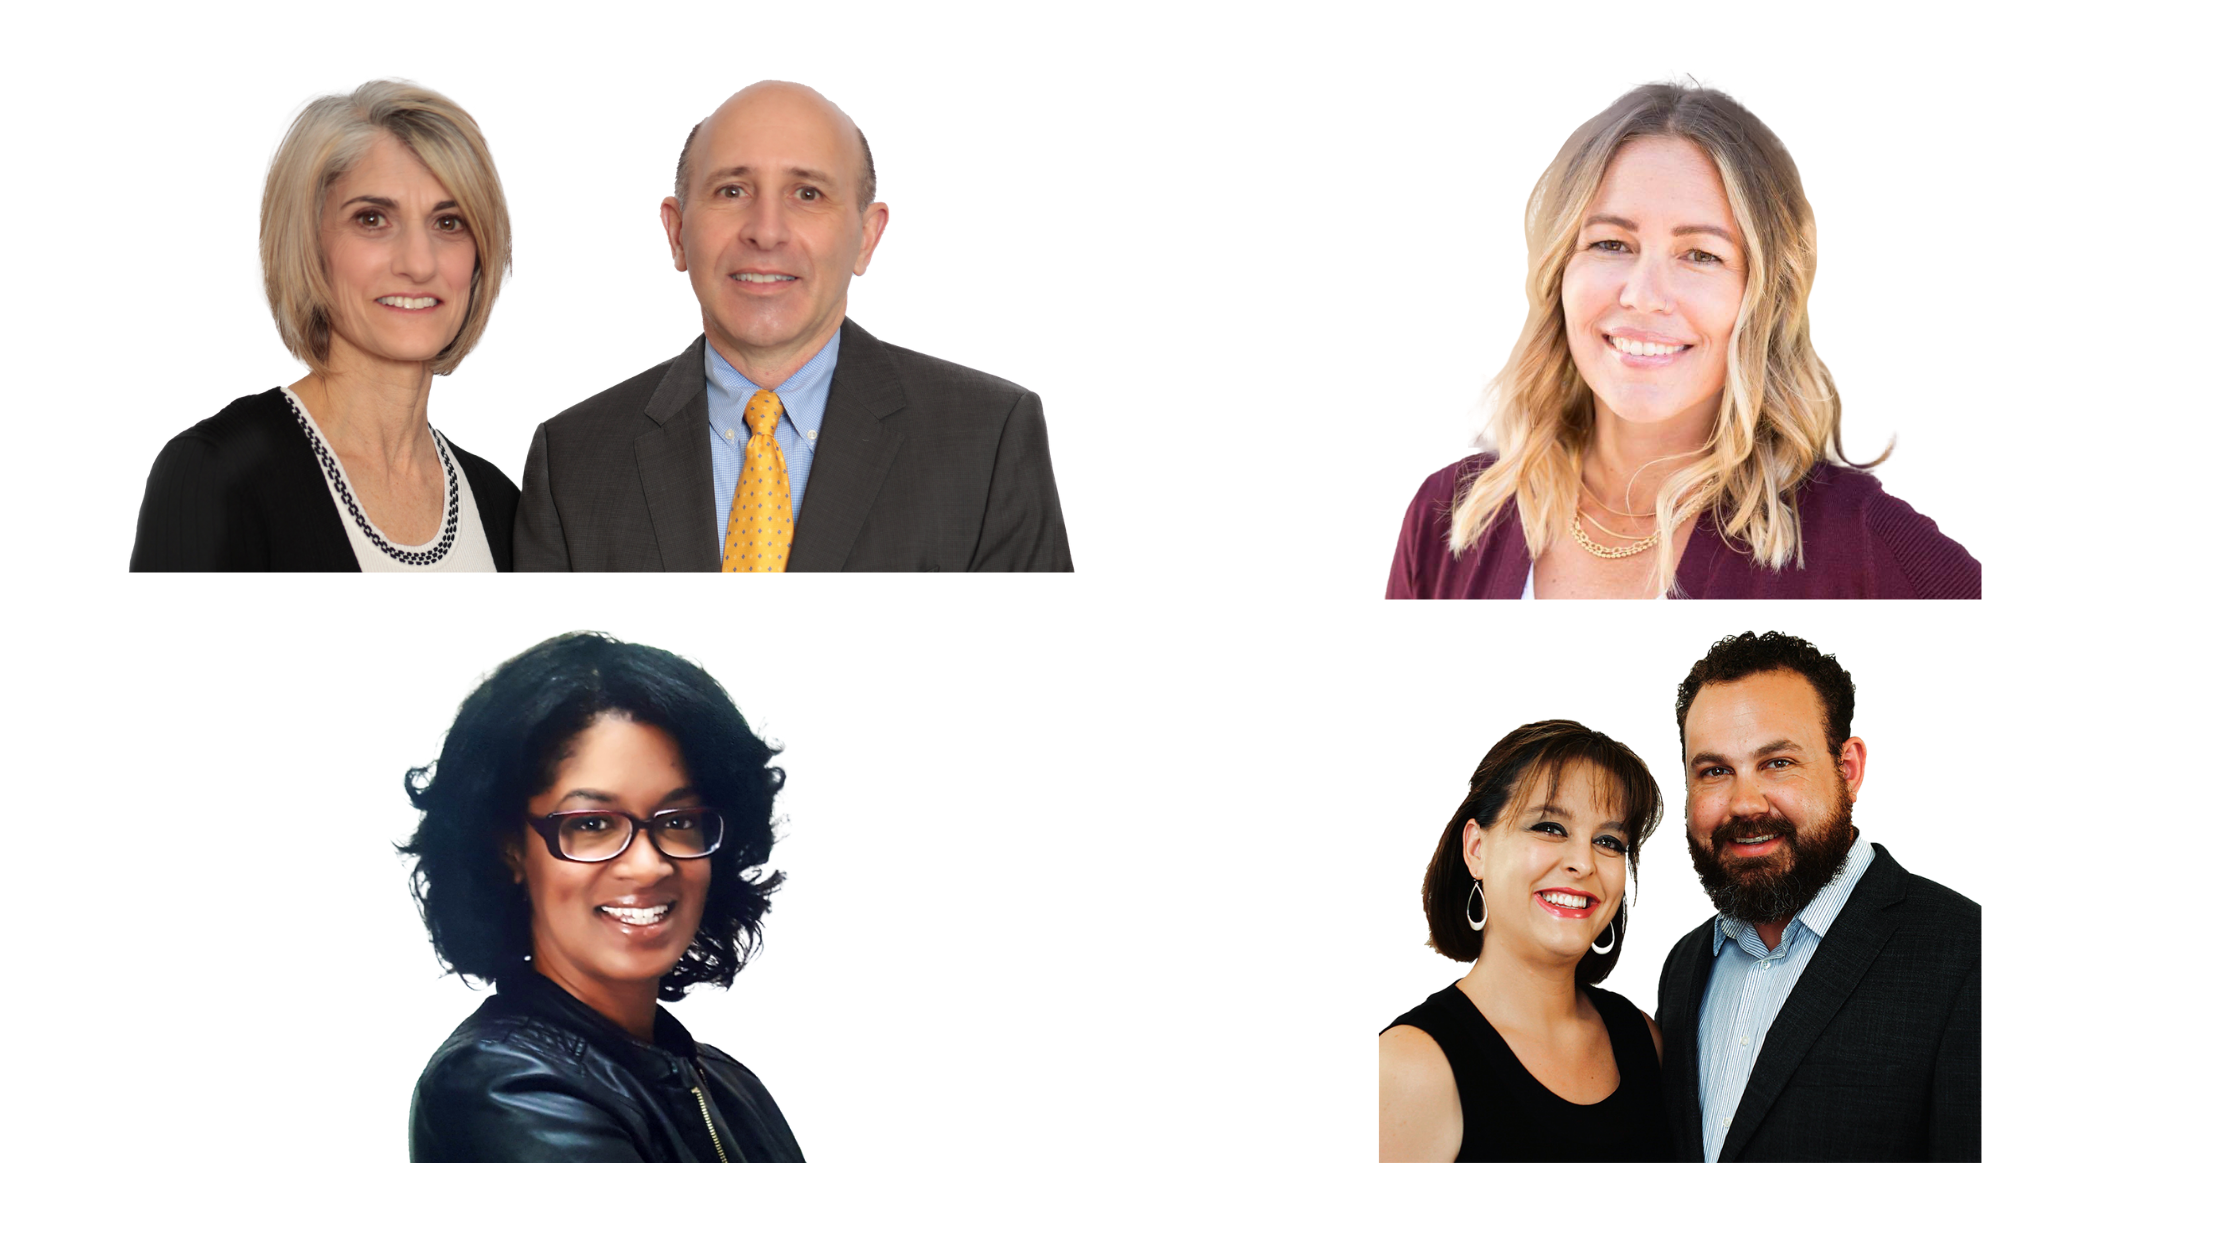 New franchisees provide personal service from Oasis Senior Advisors